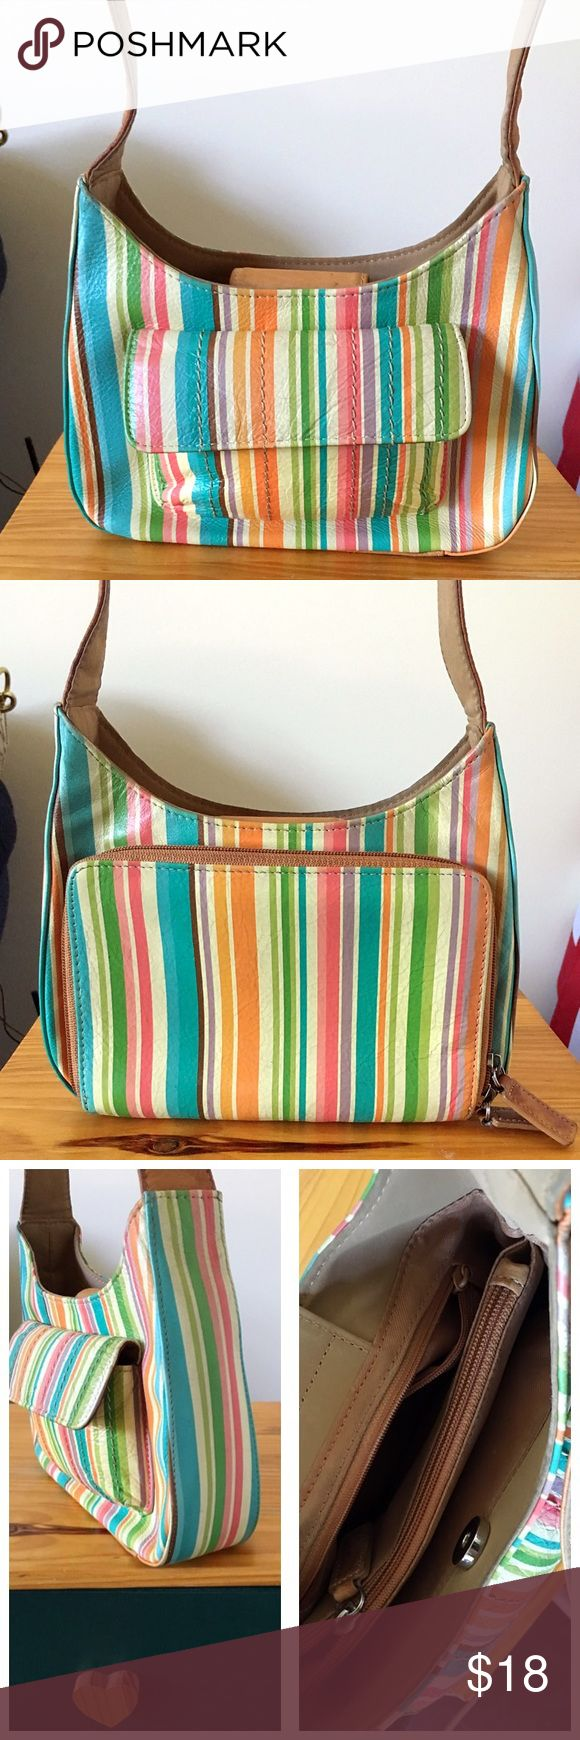 Fossil Multi Color Shoulder Bag Little cute Fossil purse, beautiful colors. I may have used it several times. 😅 Over all in good condition Fossil Bags Shoulder Bags